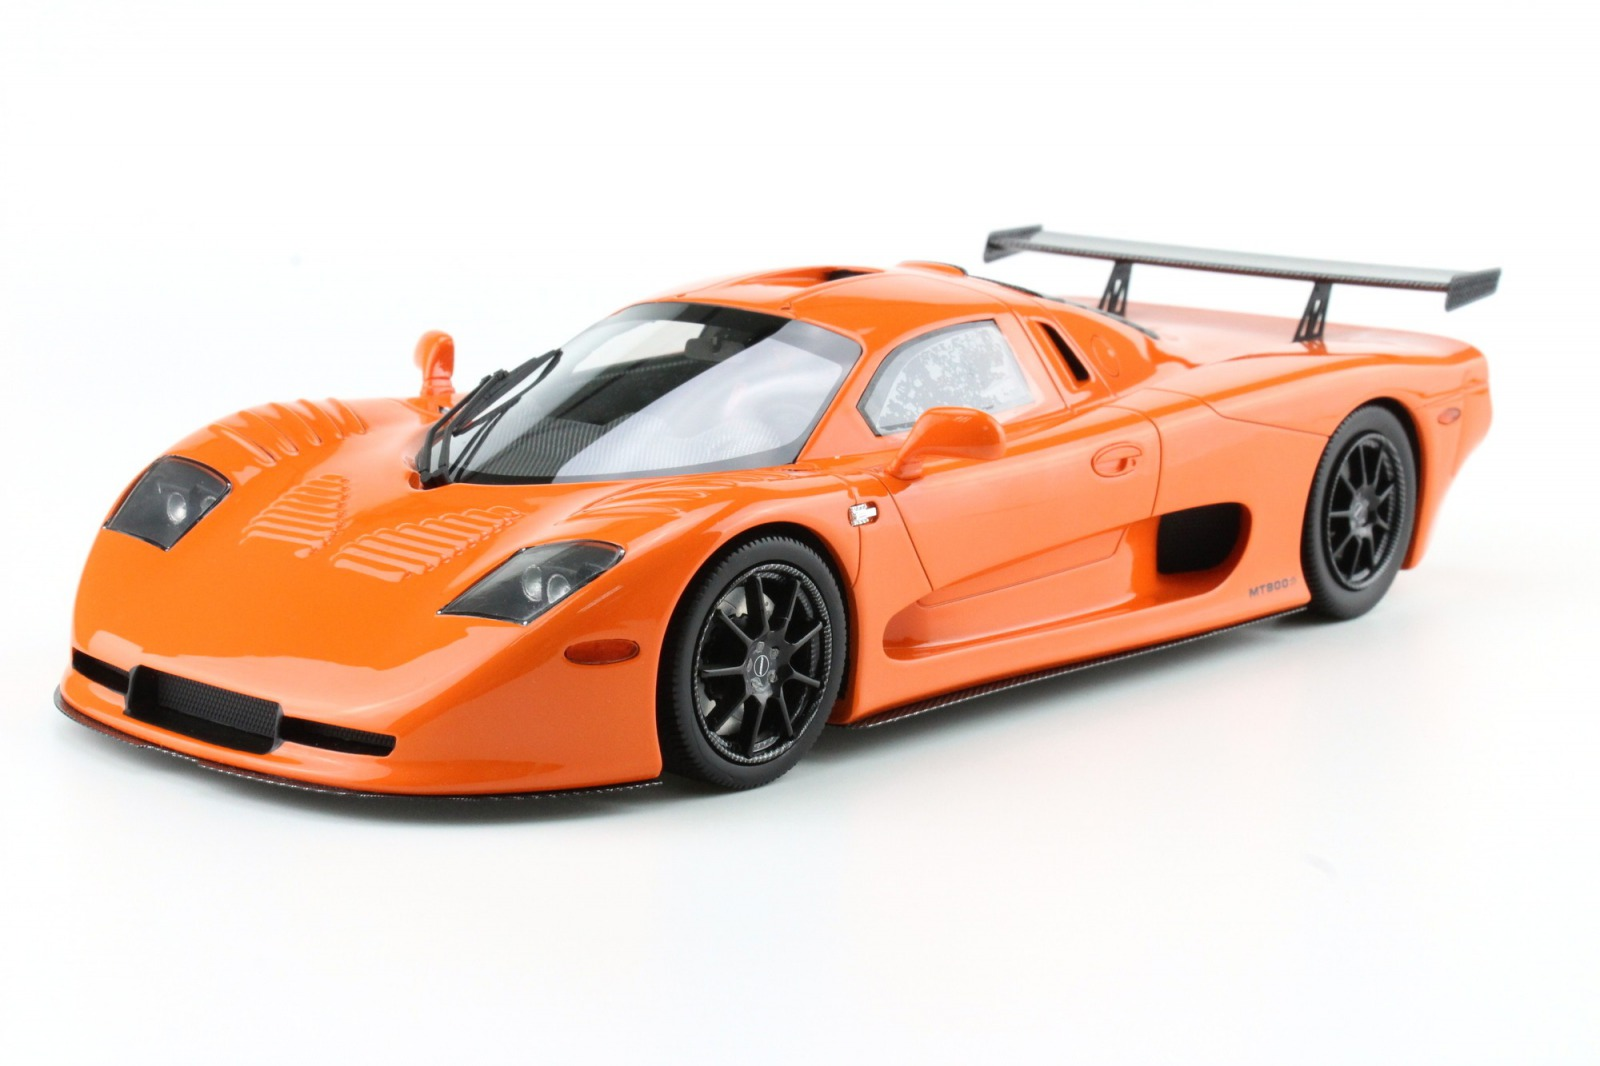 Topmarques トップマルケス 1:18 2003年モデル モスラー MT 9002003 Mosler MT 900 1/18 by Topmarques NEW